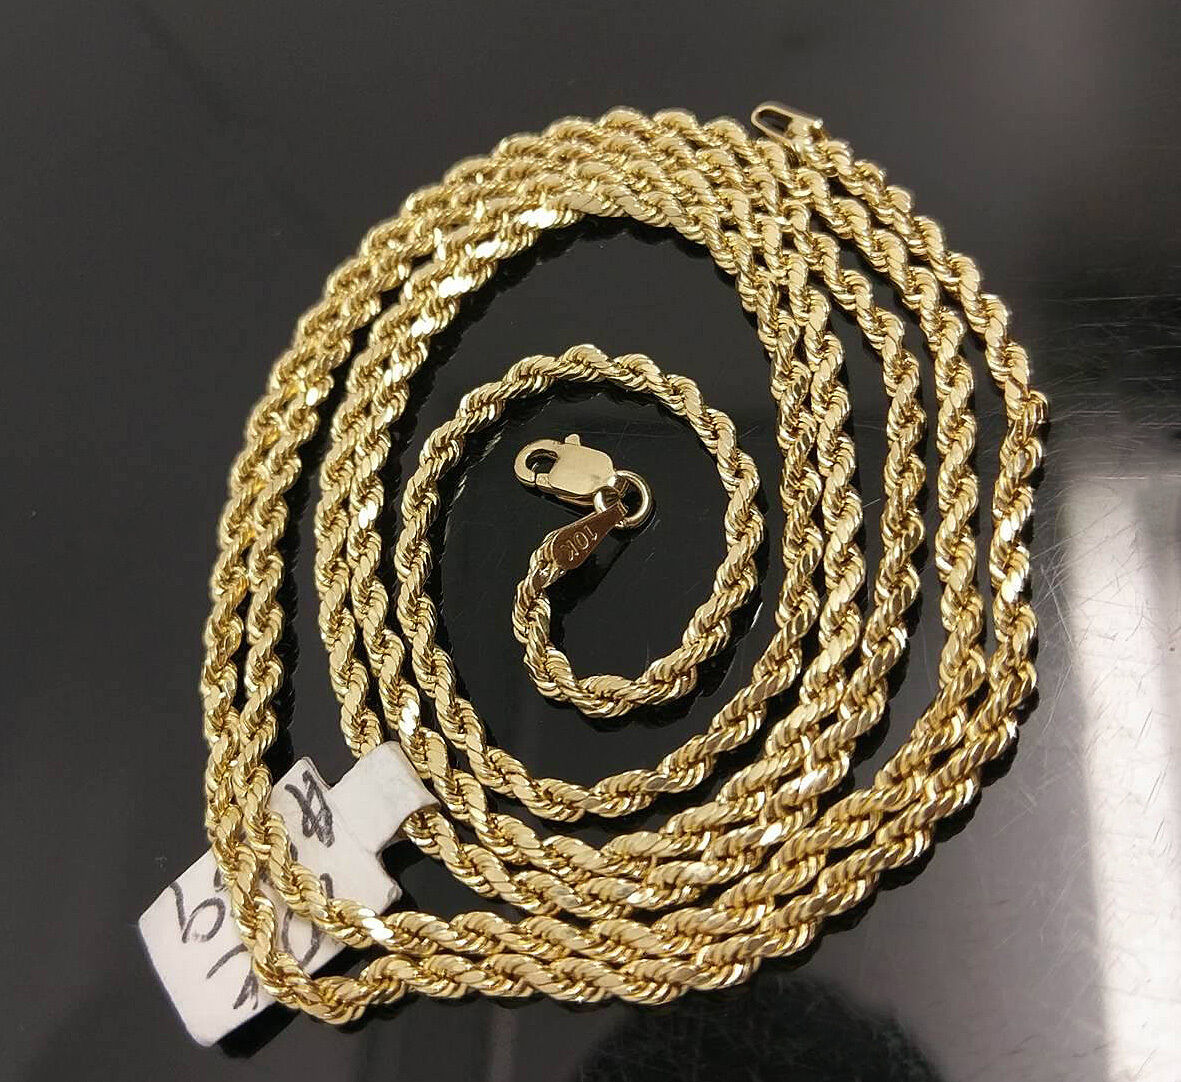 """10K Gold Chain Real Rope Necklace Men Women 3mm 2.5mm 18 20 22 24 26 28"""" REAL"""